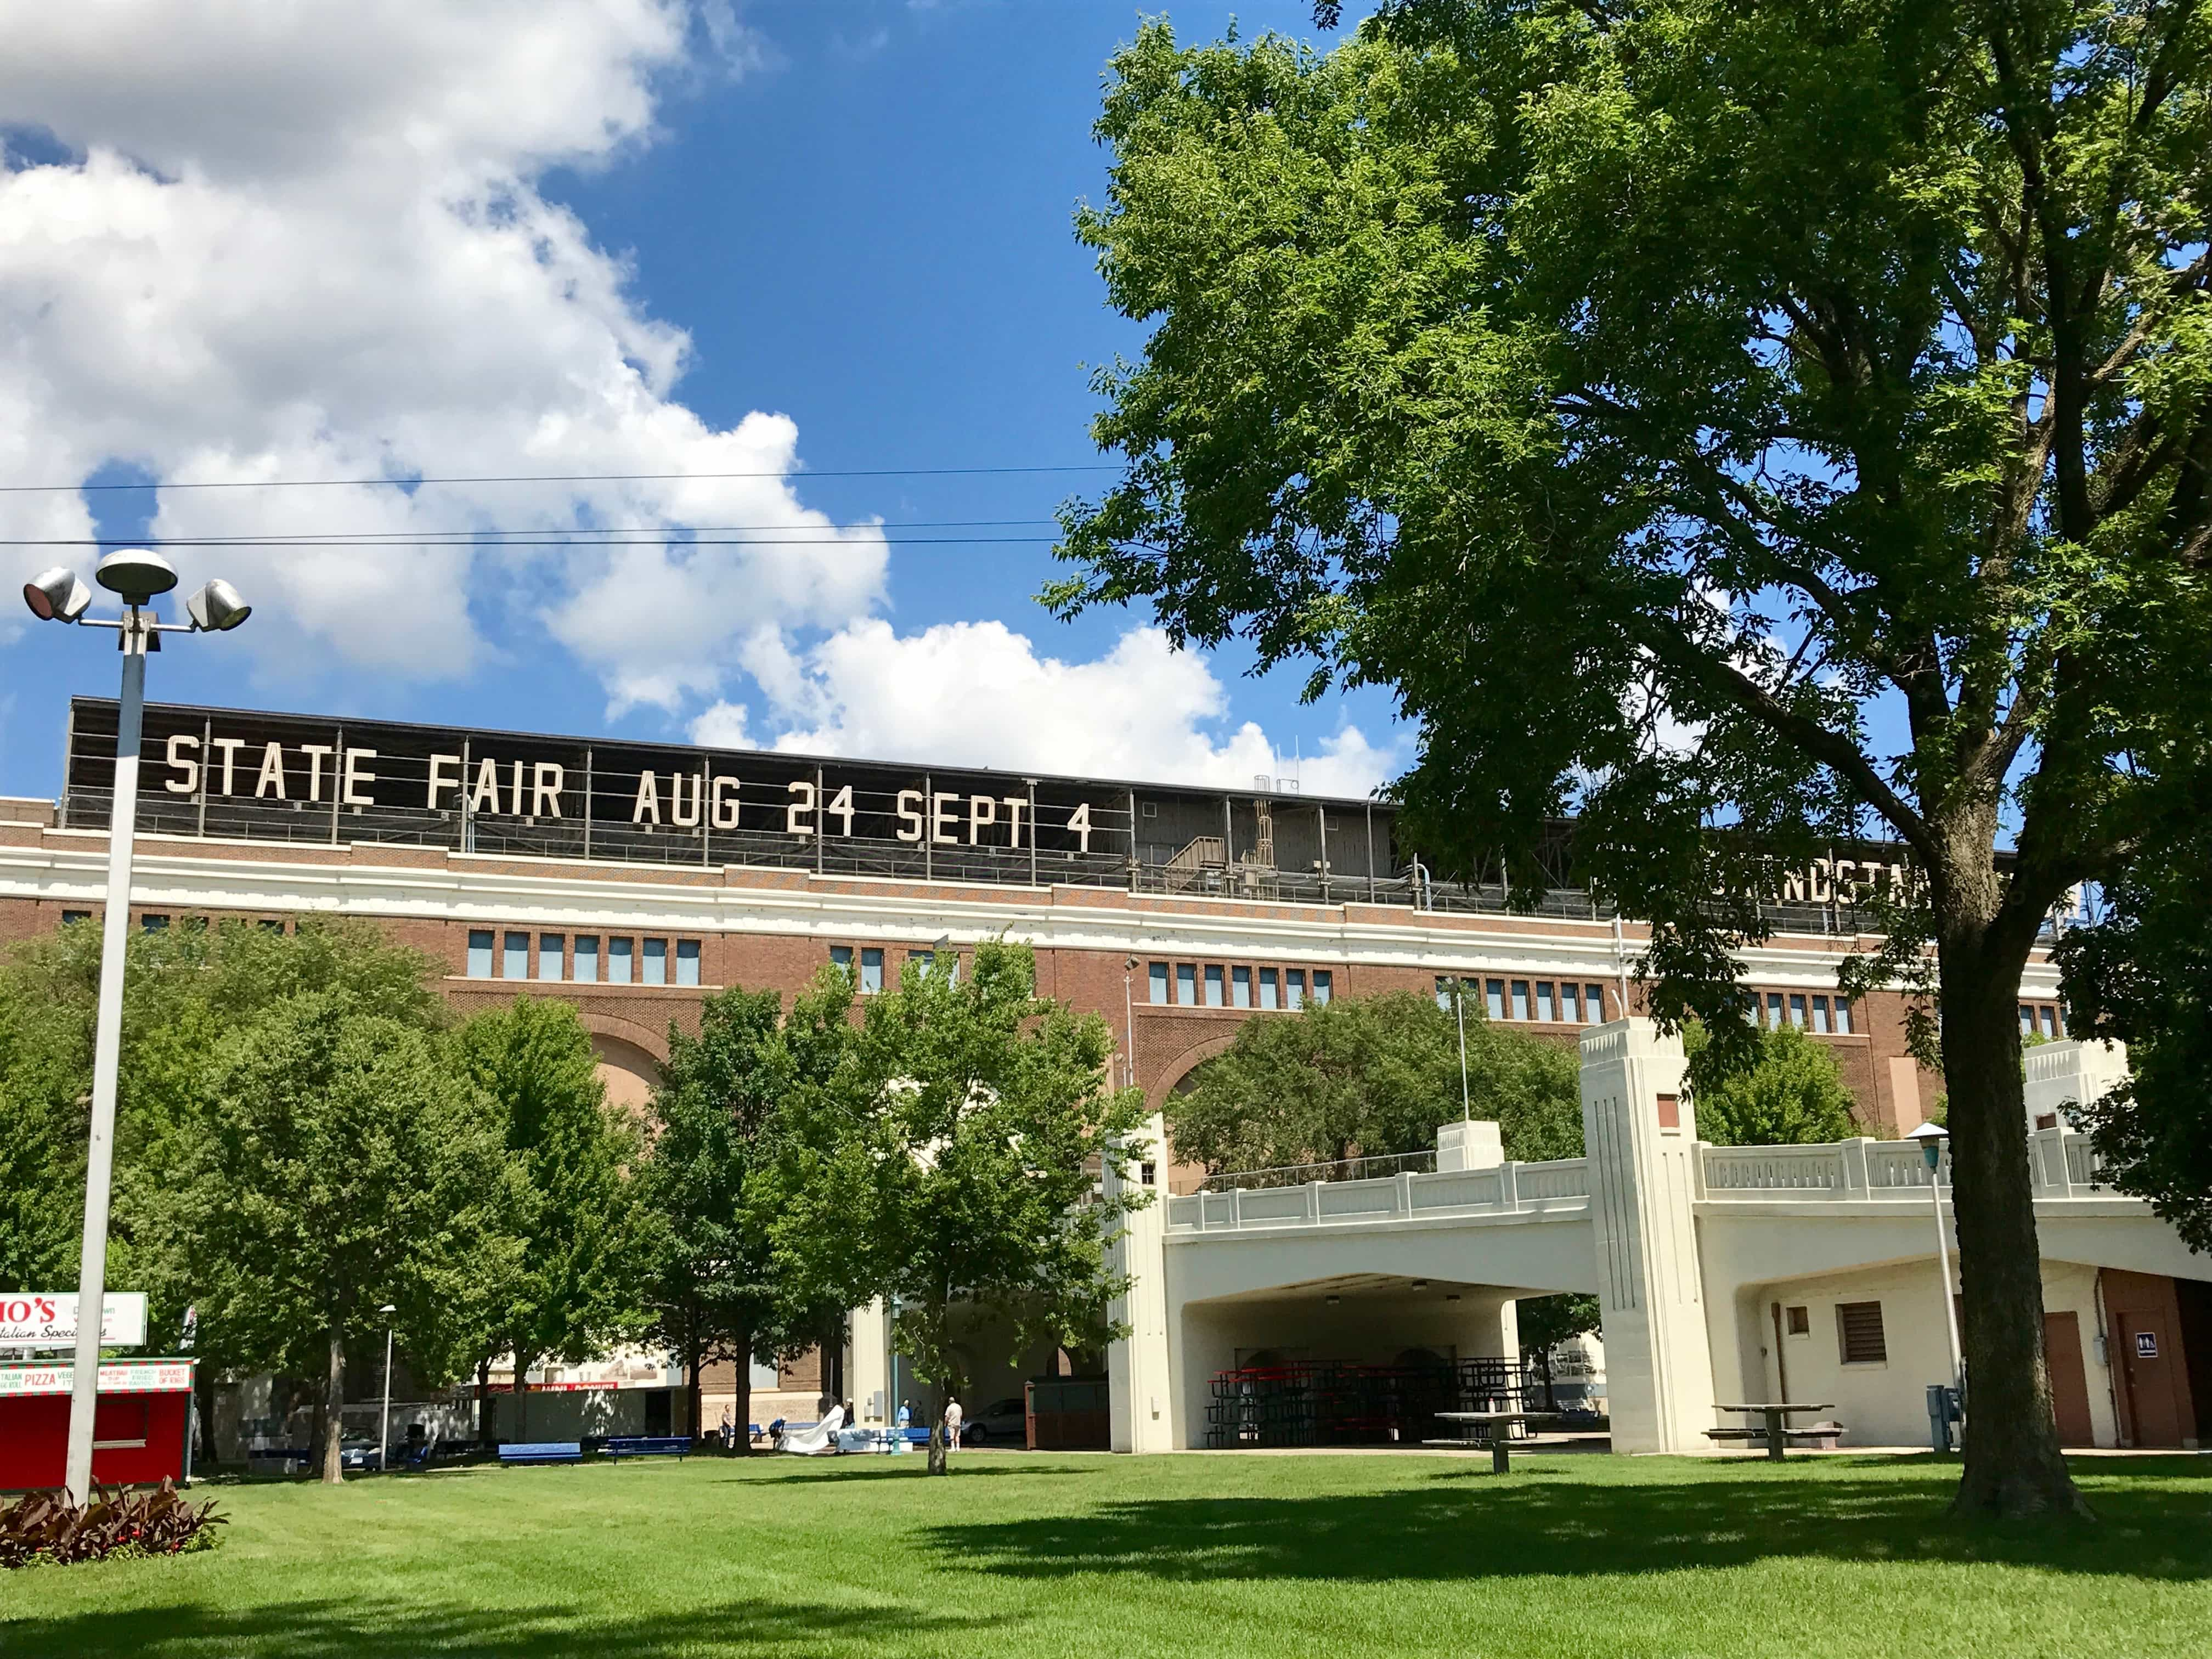 Top 5 Reasons to Visit the MN State Fair - DayTripper